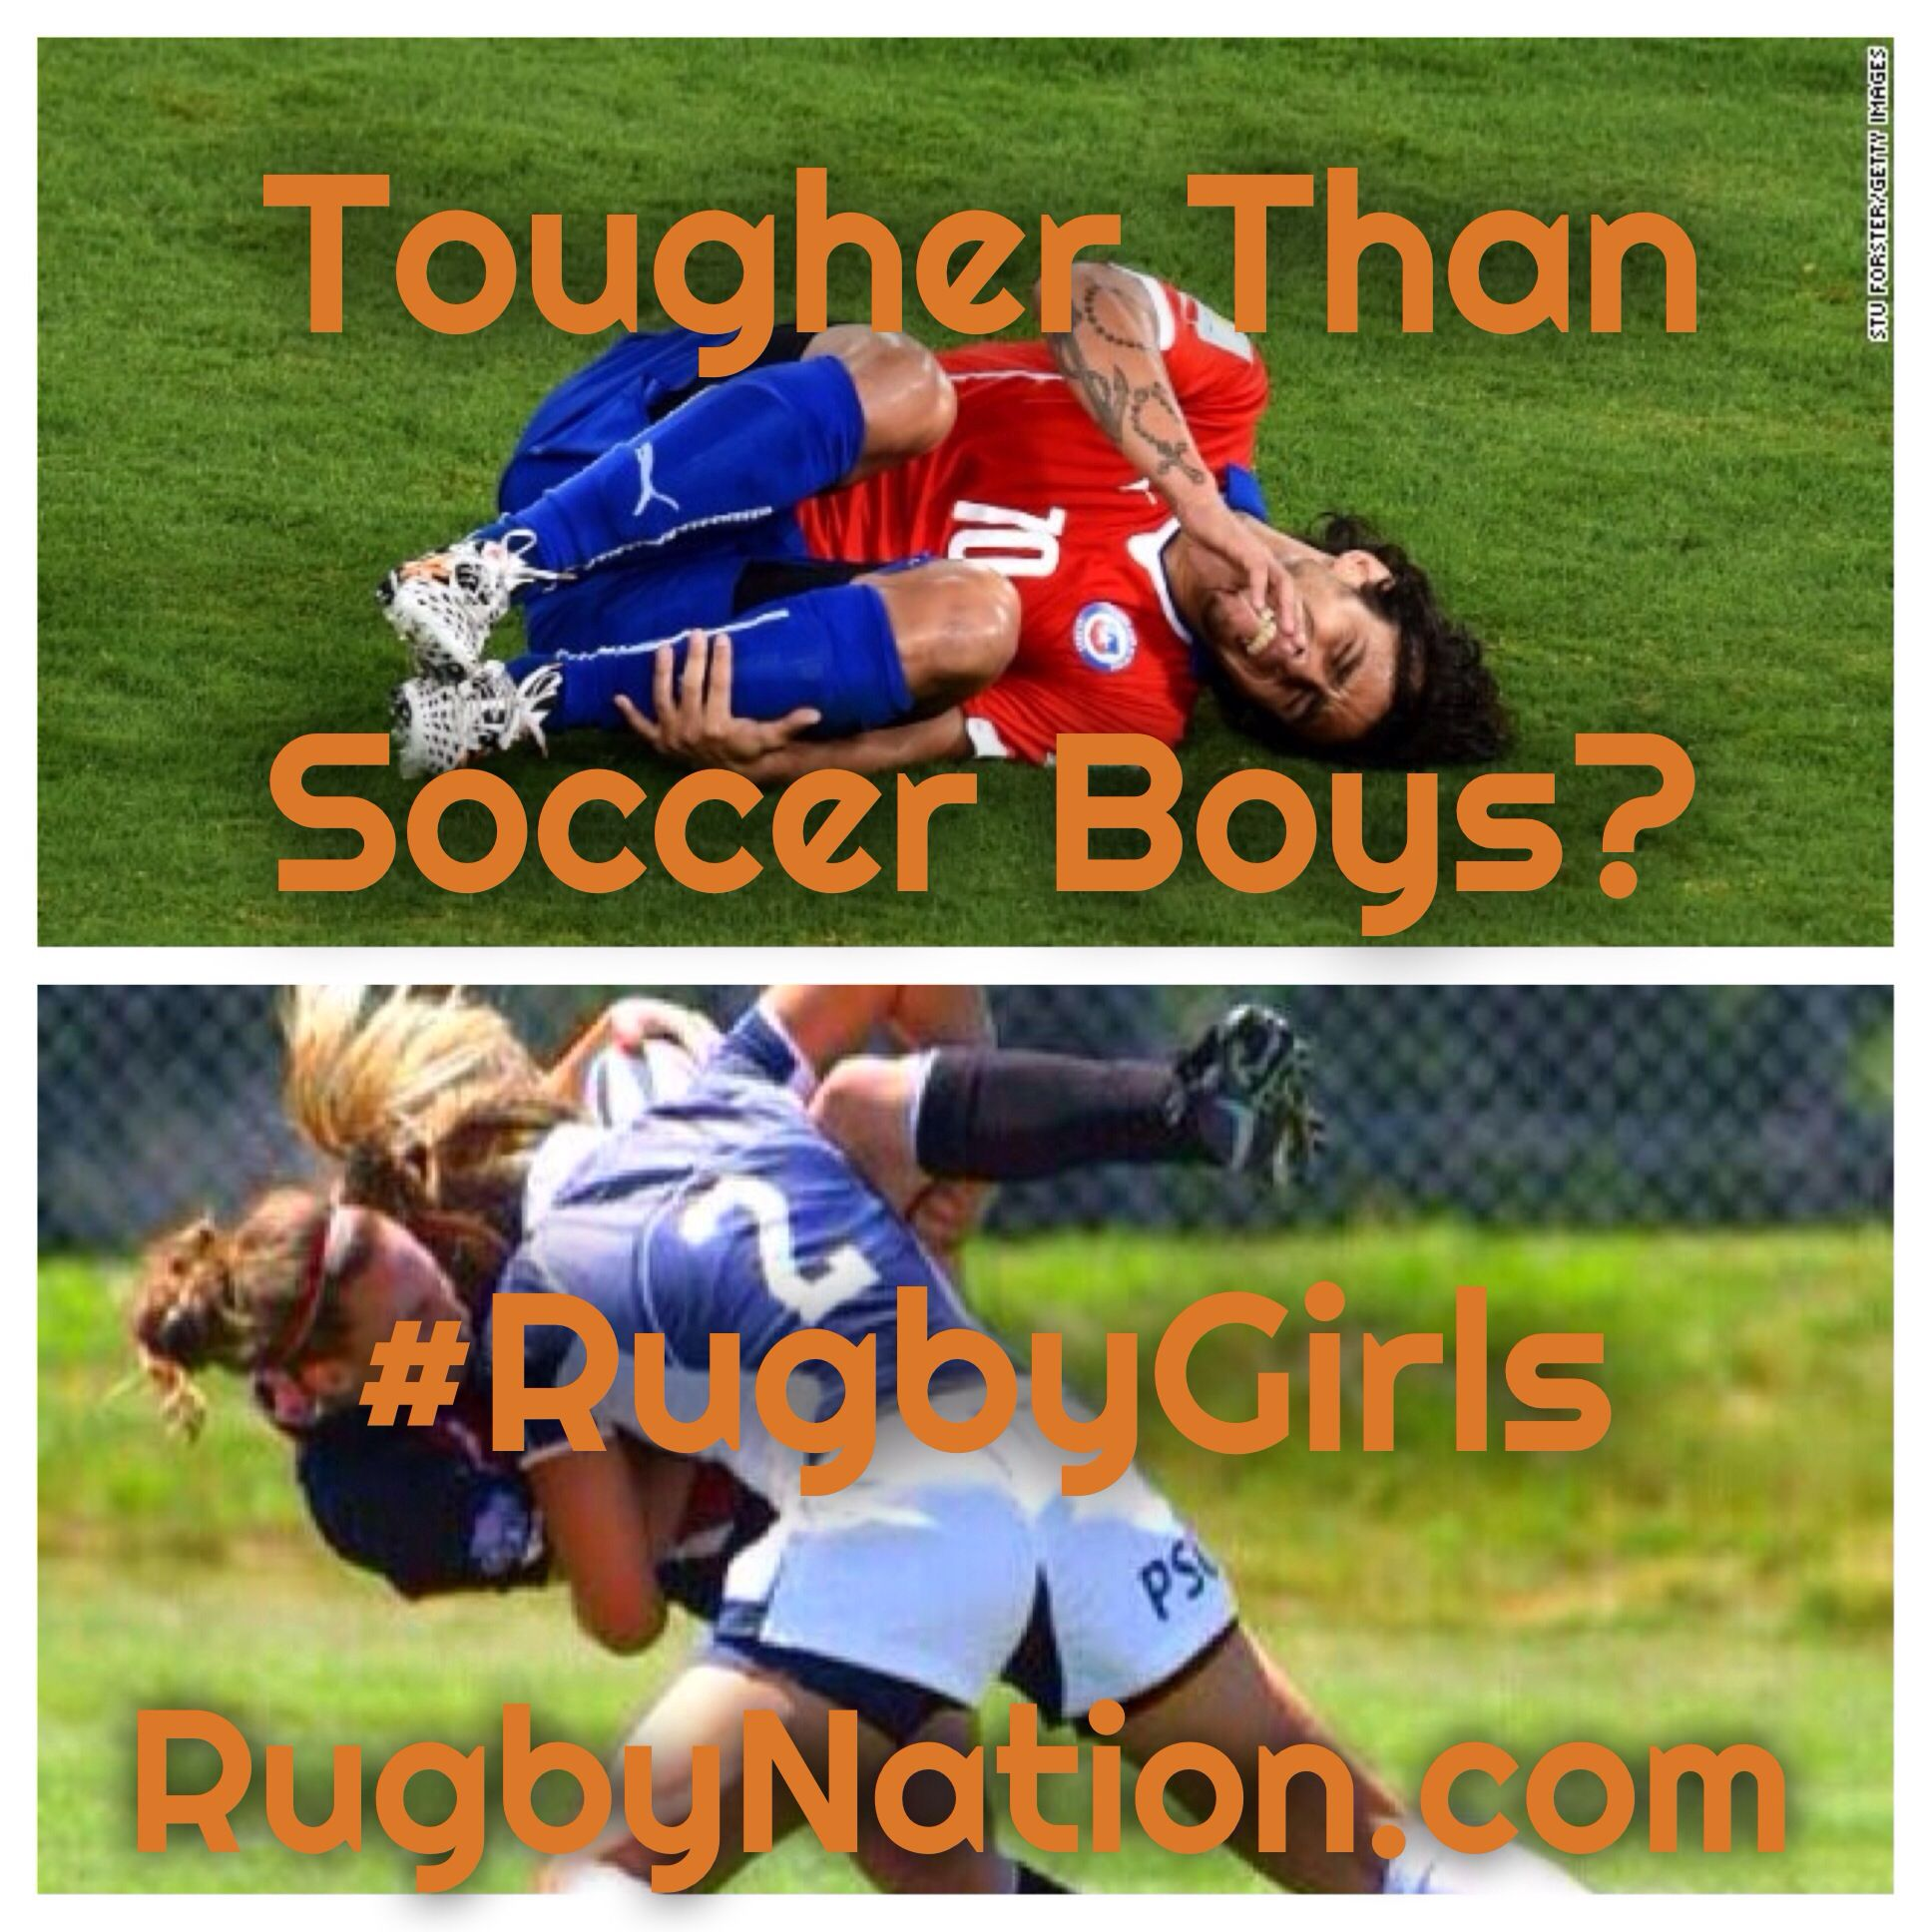 Rugbygirls Are Tougher Than Football Soccer Men Worldcup Futbol Rugby Brazil Brasil Fifa Worldcup2014 Rugby Girls Rugby Quotes Rugby Motivation